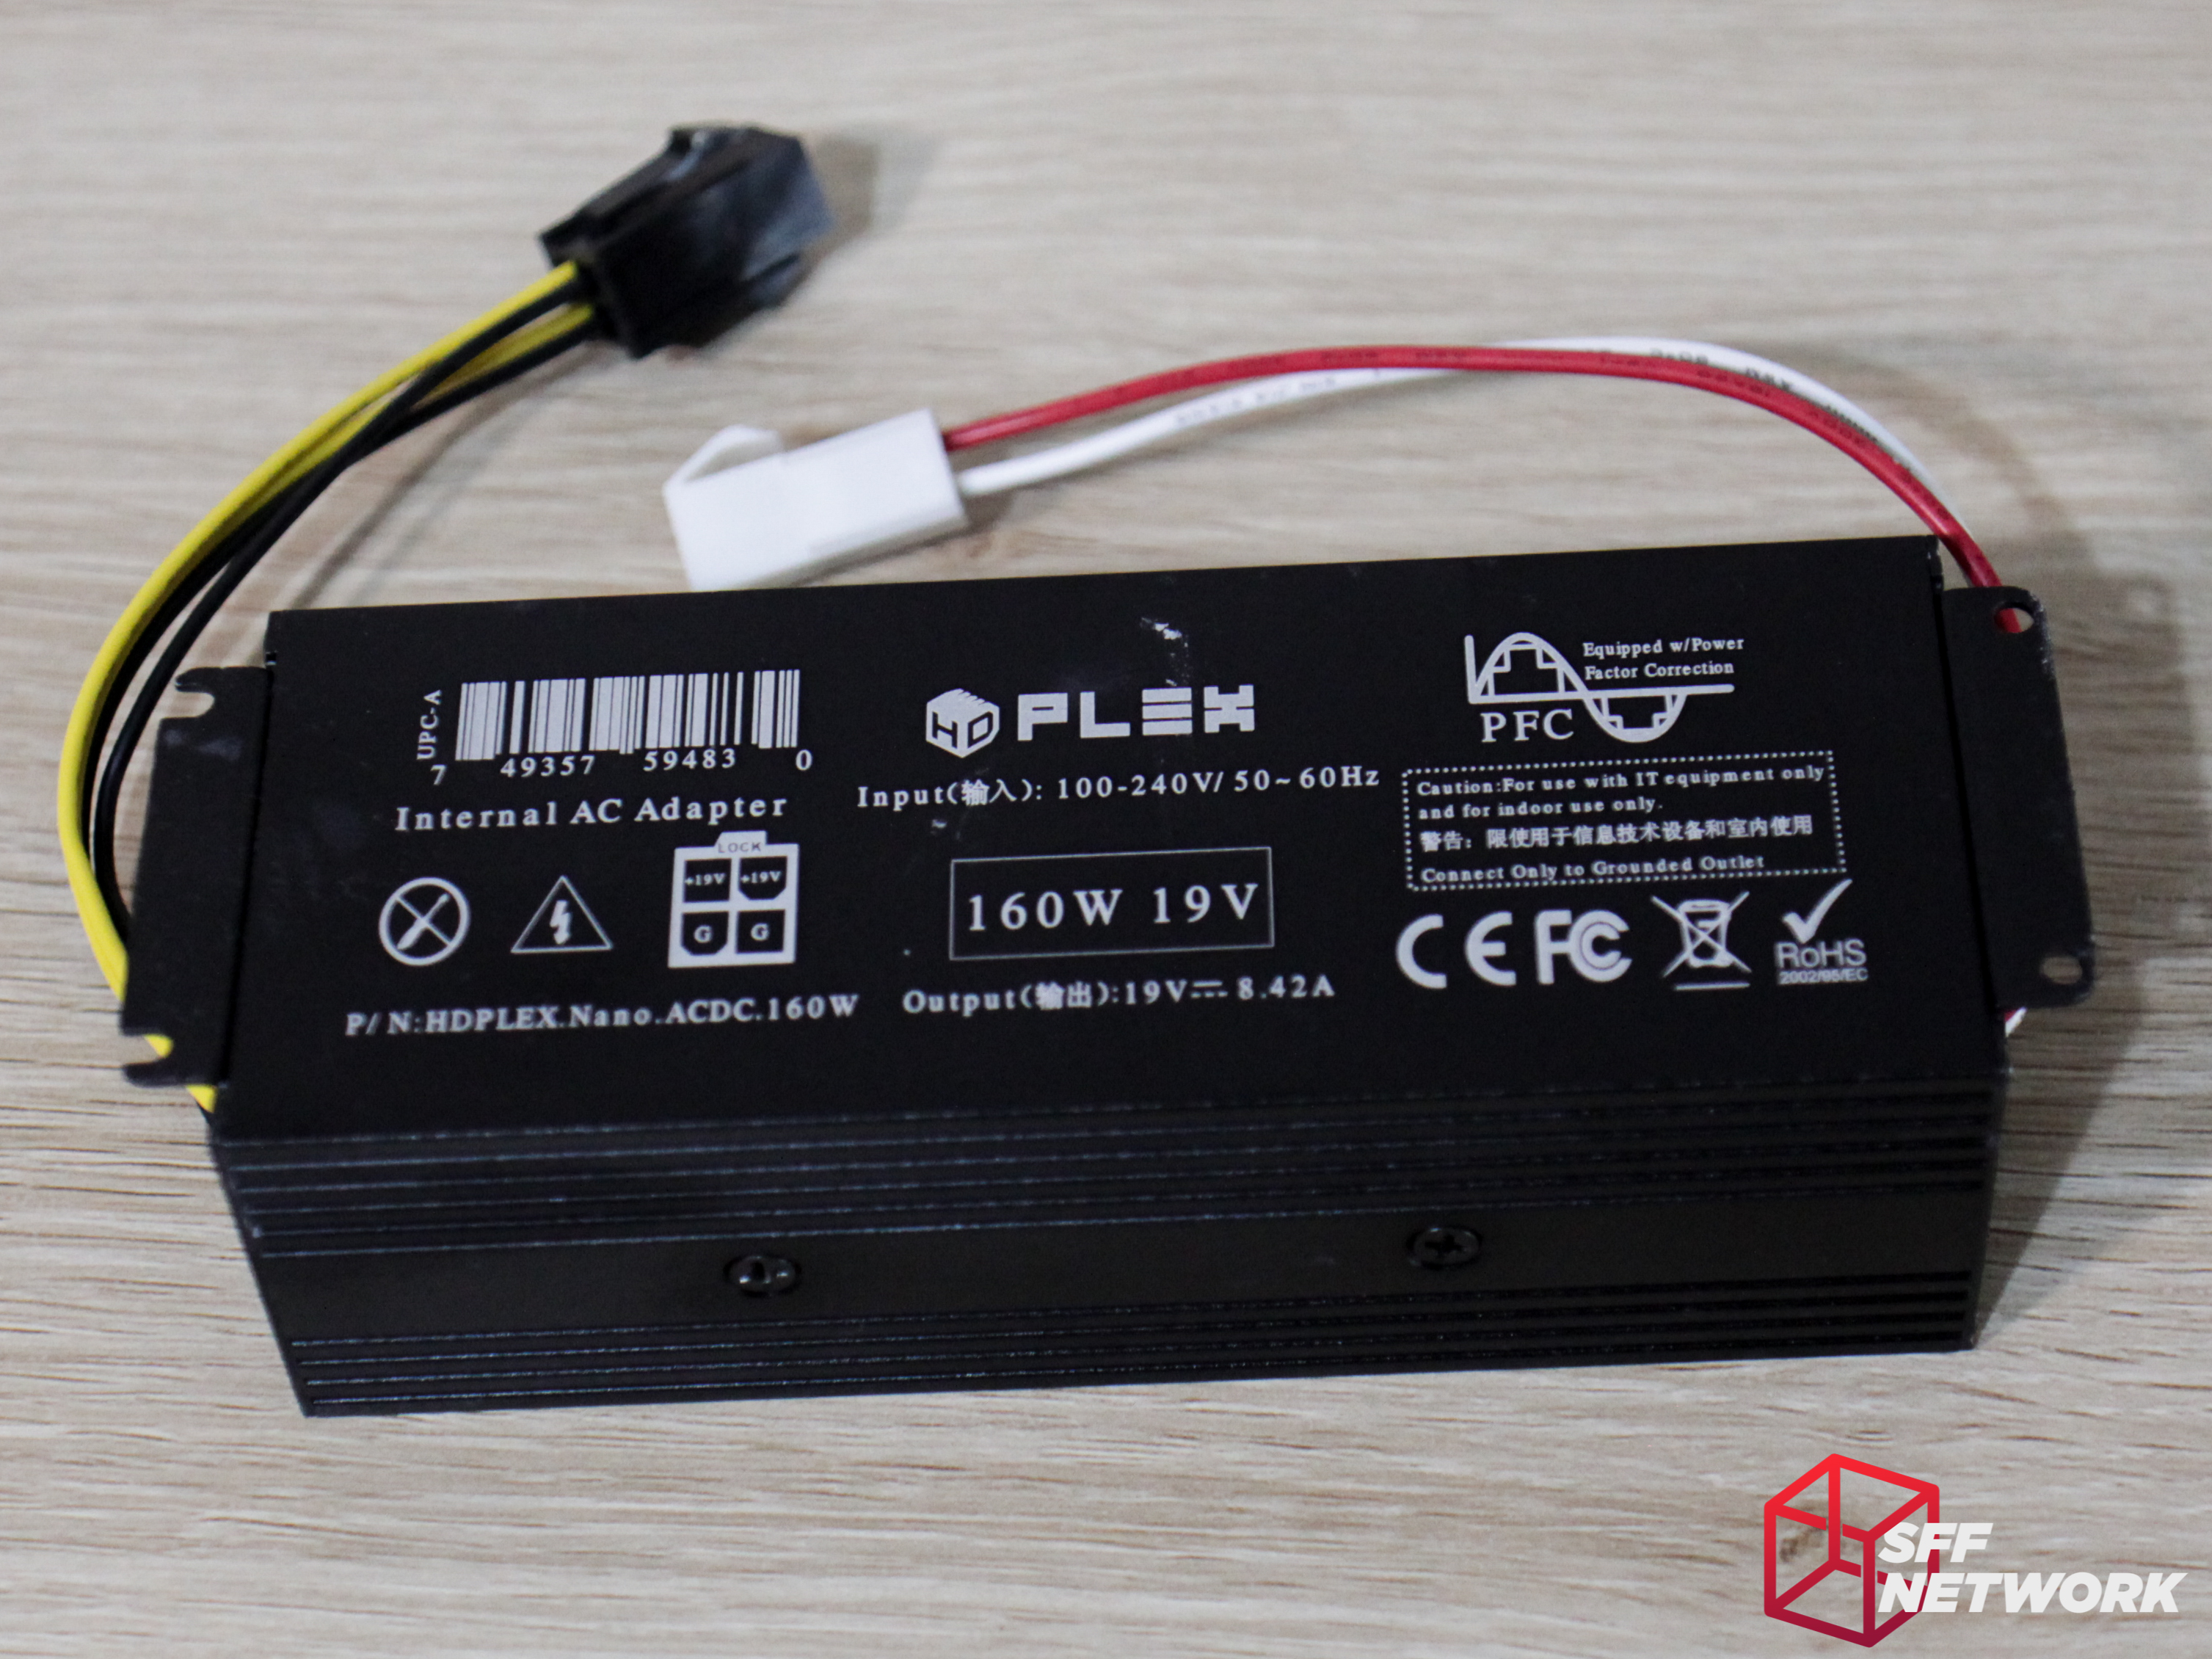 Hdplex Ac Dc 160w And 300w A Powerful Solution Small Form Power Supply Built In Emi Filter With Overload Short Circuit The Has No Ventilation Holes All Heatsinking Is Done By Extruded Aluminium Shell Which We Will Look At More Closely While